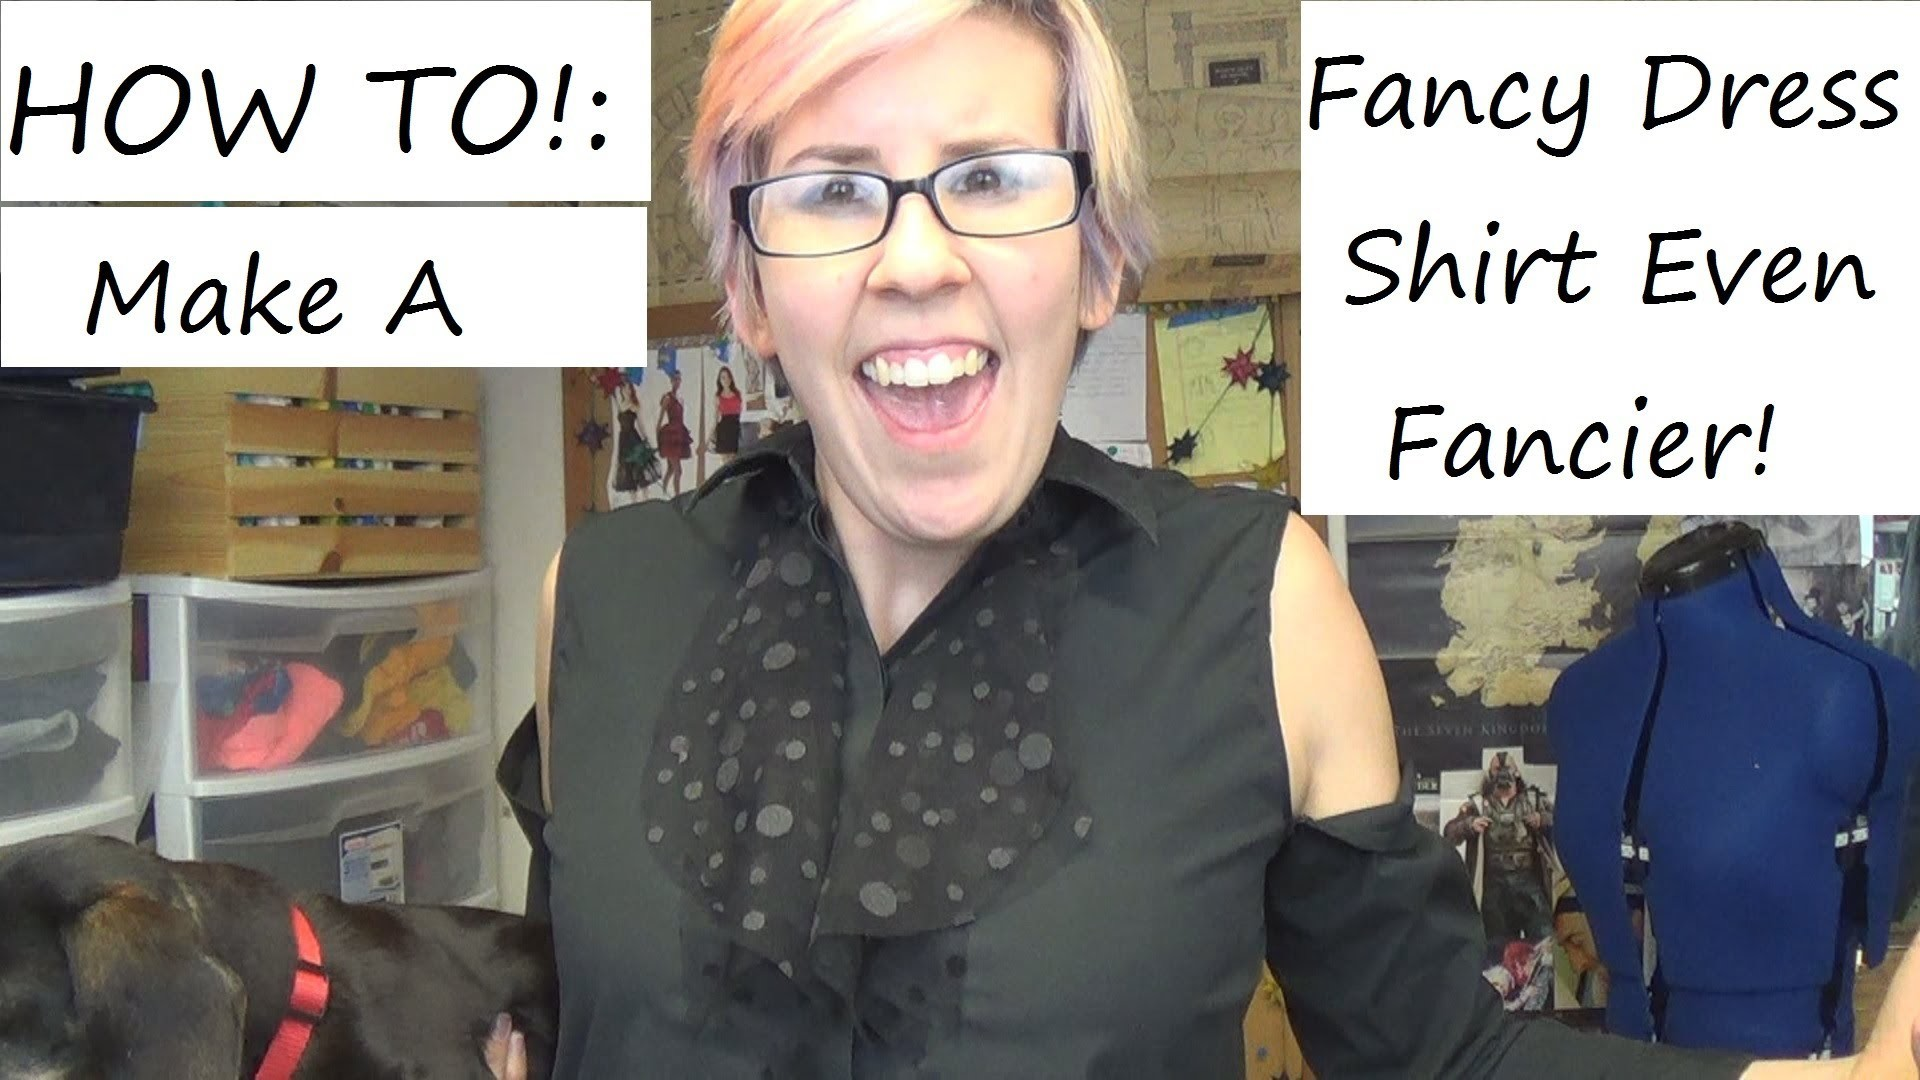 Sewing Nerd! - Tutorial: How to Add Ruffles to a Dress Shirt and Make Cut-Out Shoulders!